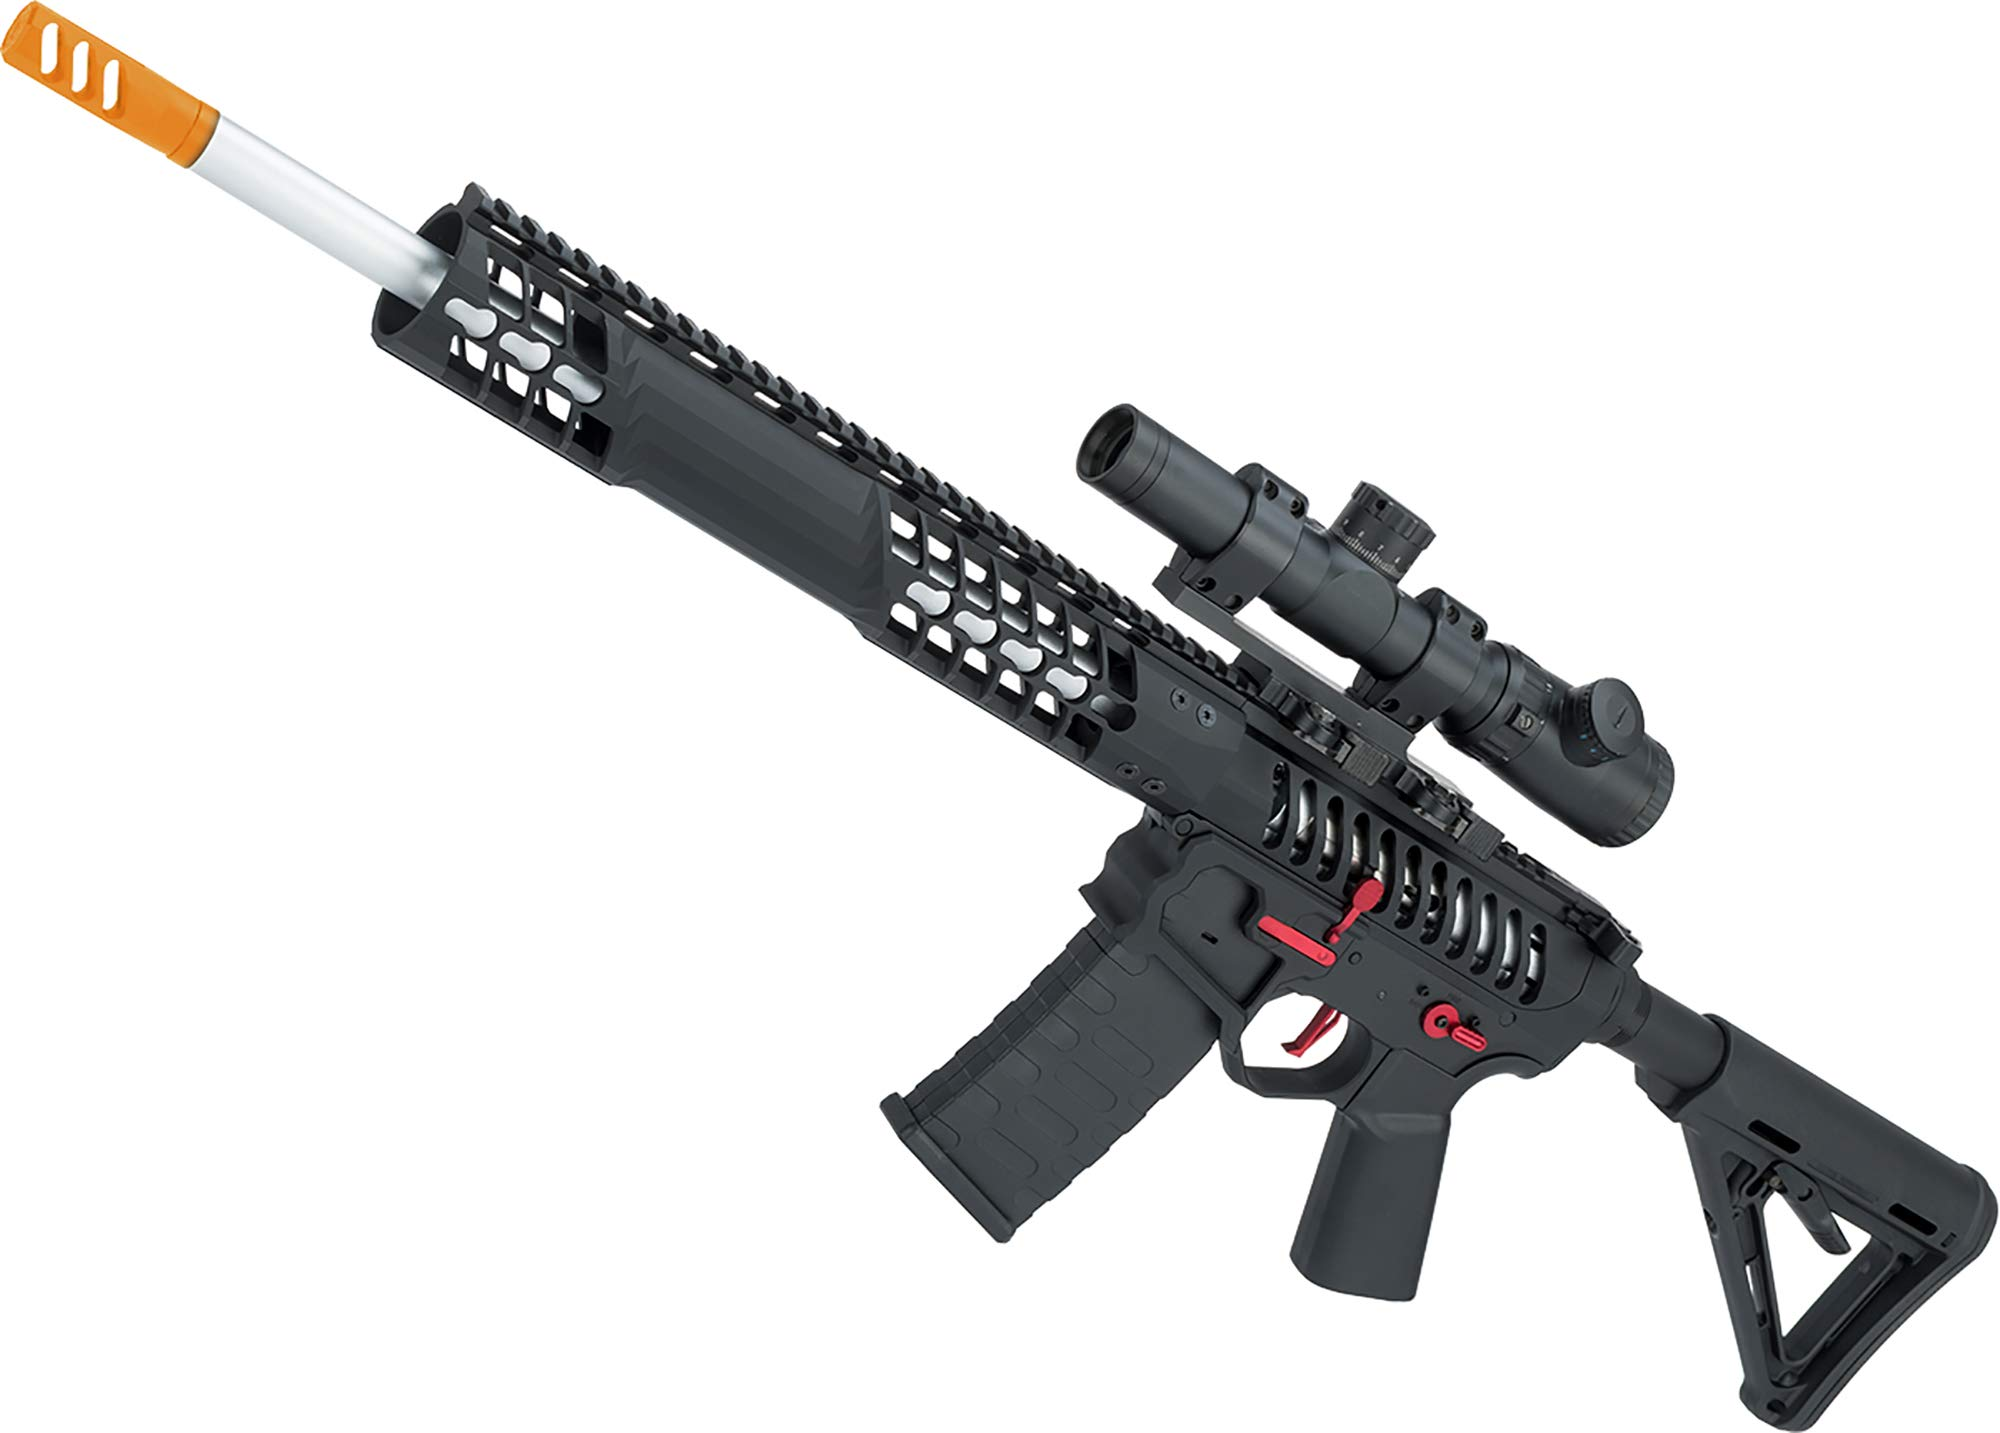 Evike EMG F1 Firearms BDR-15 3G AR15 Full Metal Airsoft AEG Rifle (Color: Black/Red Selector/Magpul MOE Stock) by Evike